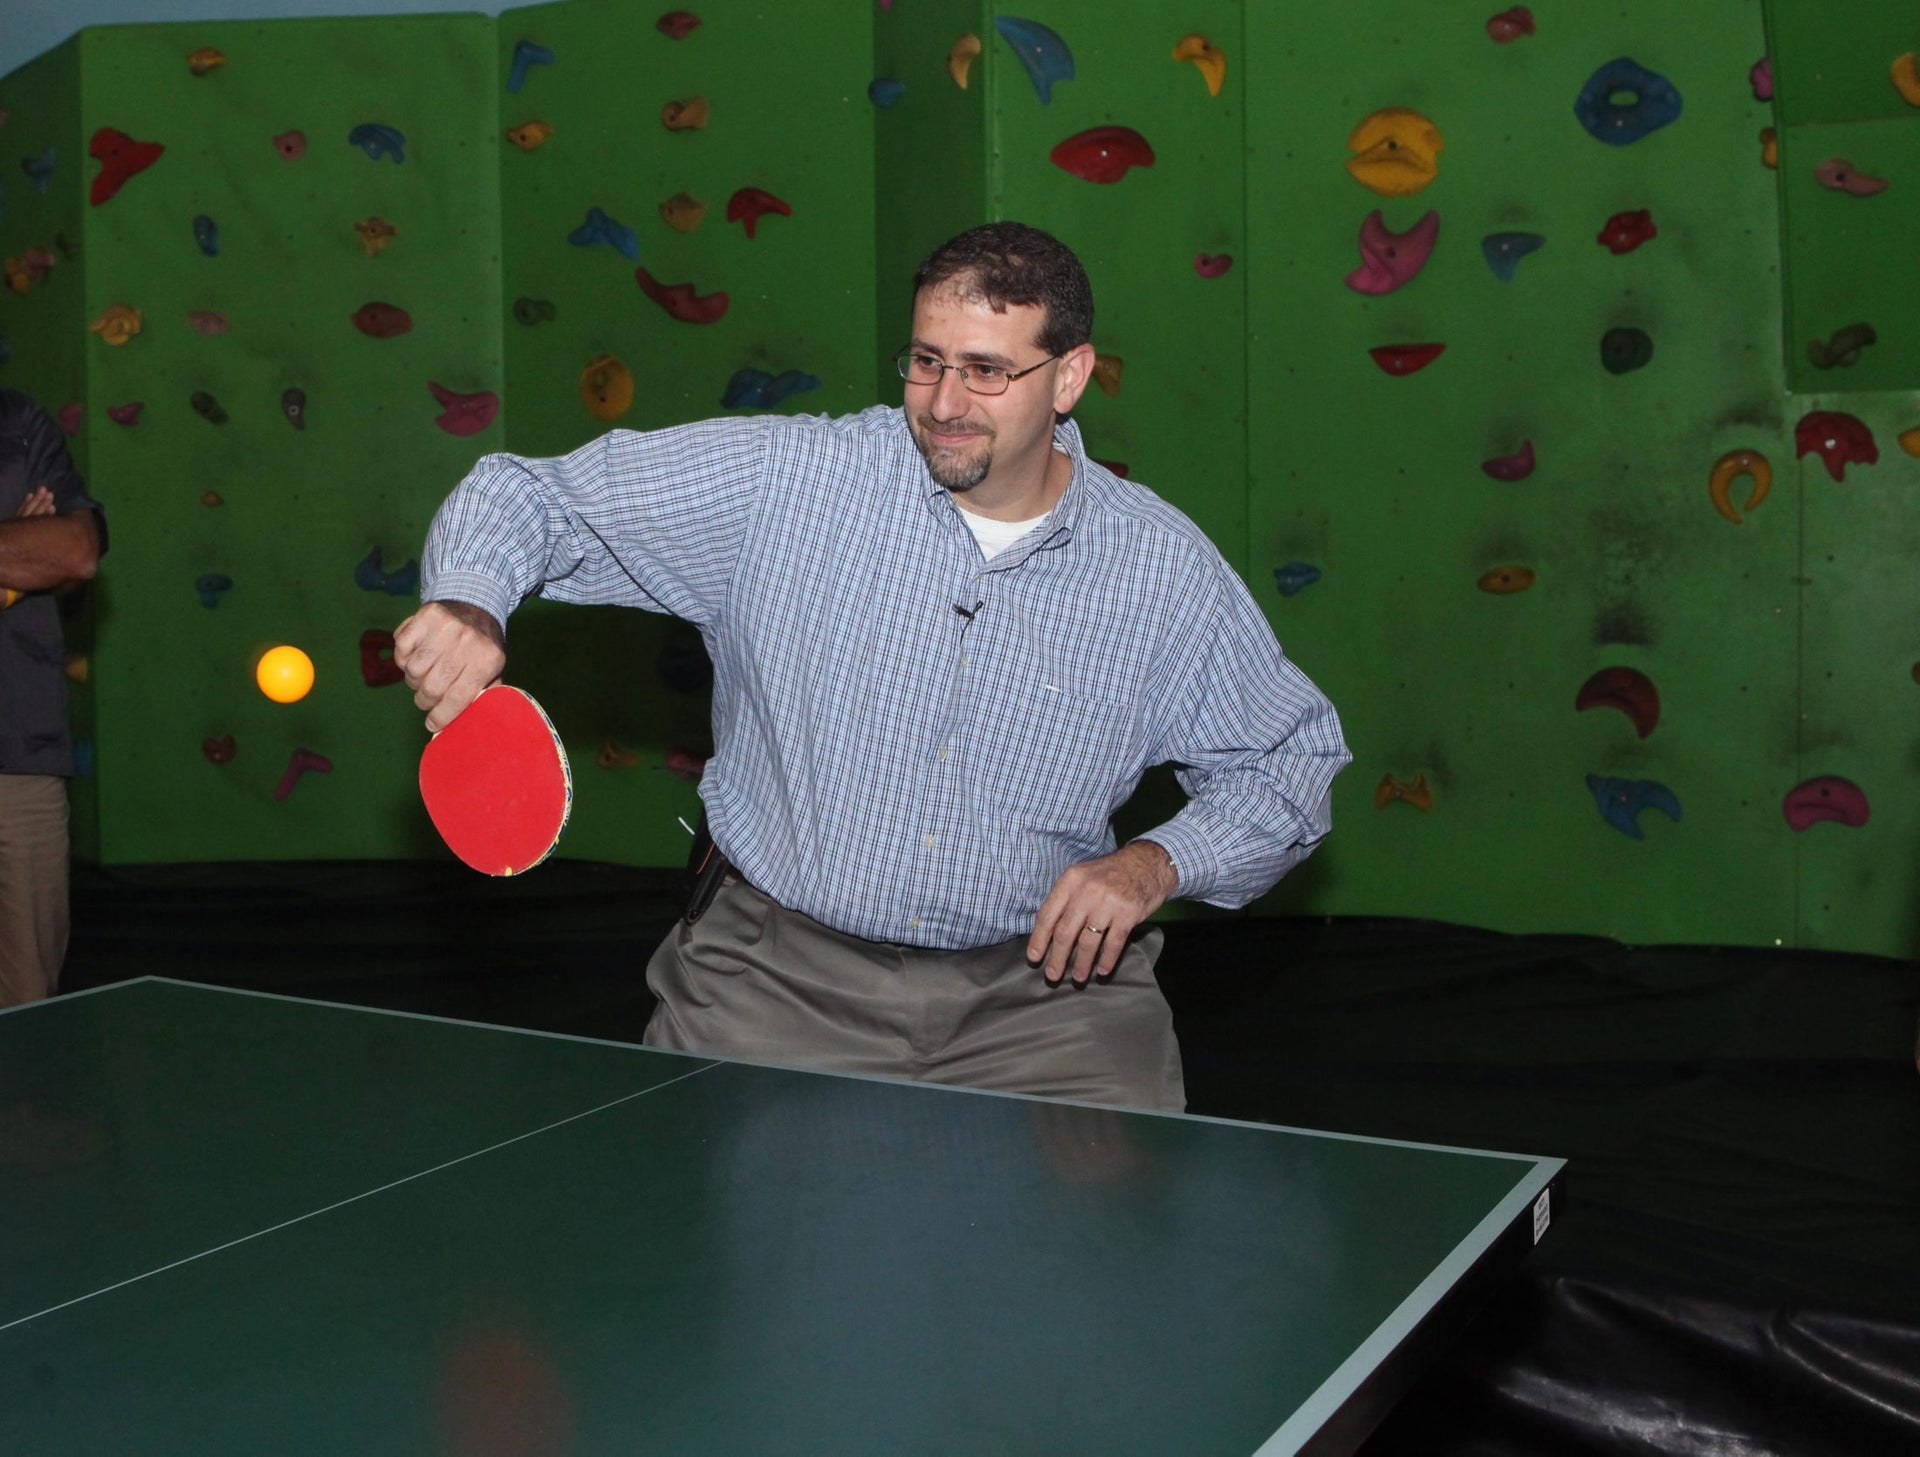 U.S. ambassador Dan Shapiro plays ping pong in Sderot in September 2012.